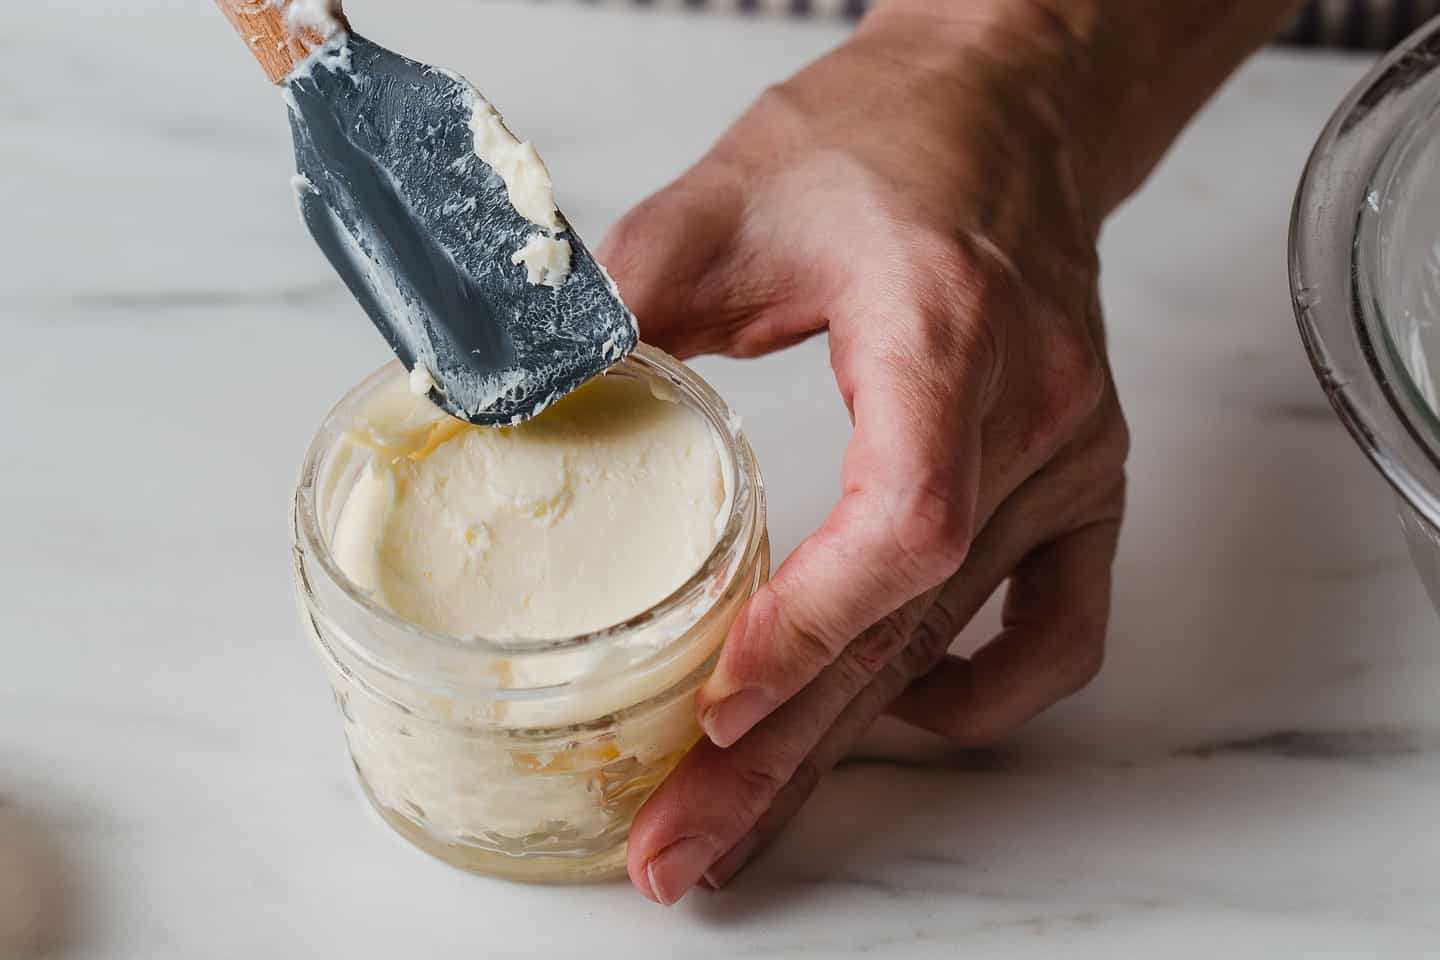 A lady putting homemade butter into a glass jar.